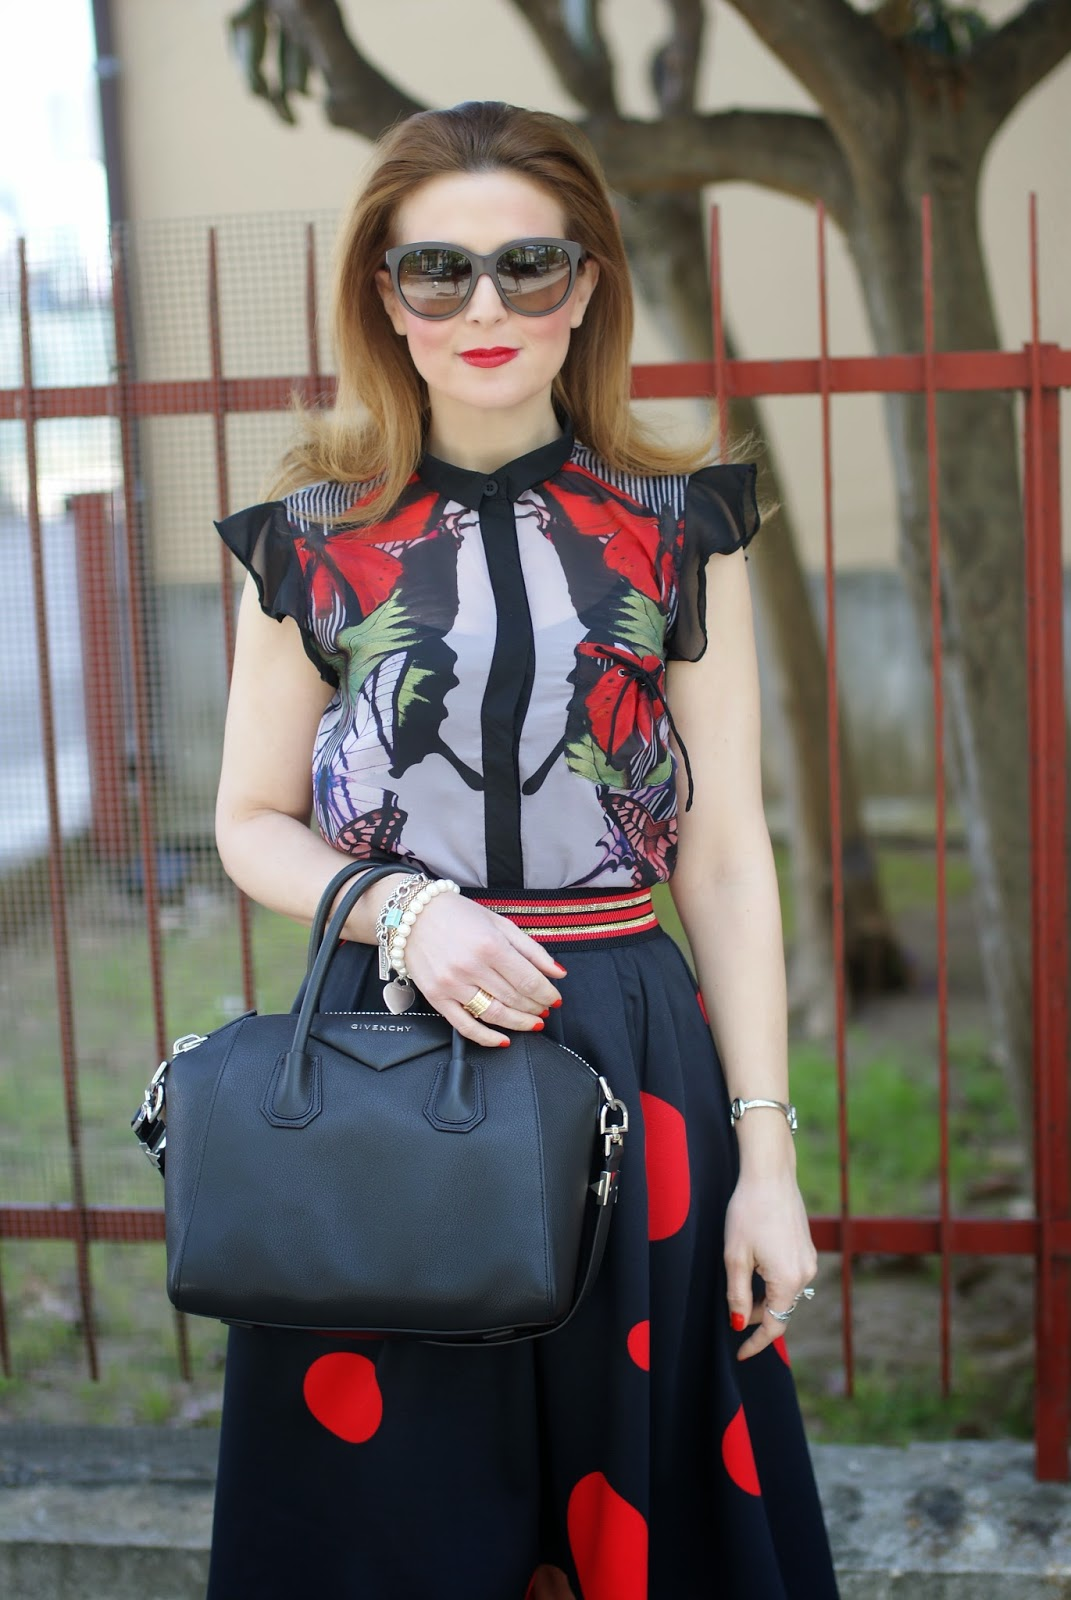 Smash! Saura blouse, Givenchy Antigona bag, Zaful polka dot skirt, large polka dot print, mix of prints on Fashion and Cookies fashion blog, fashion blogger style